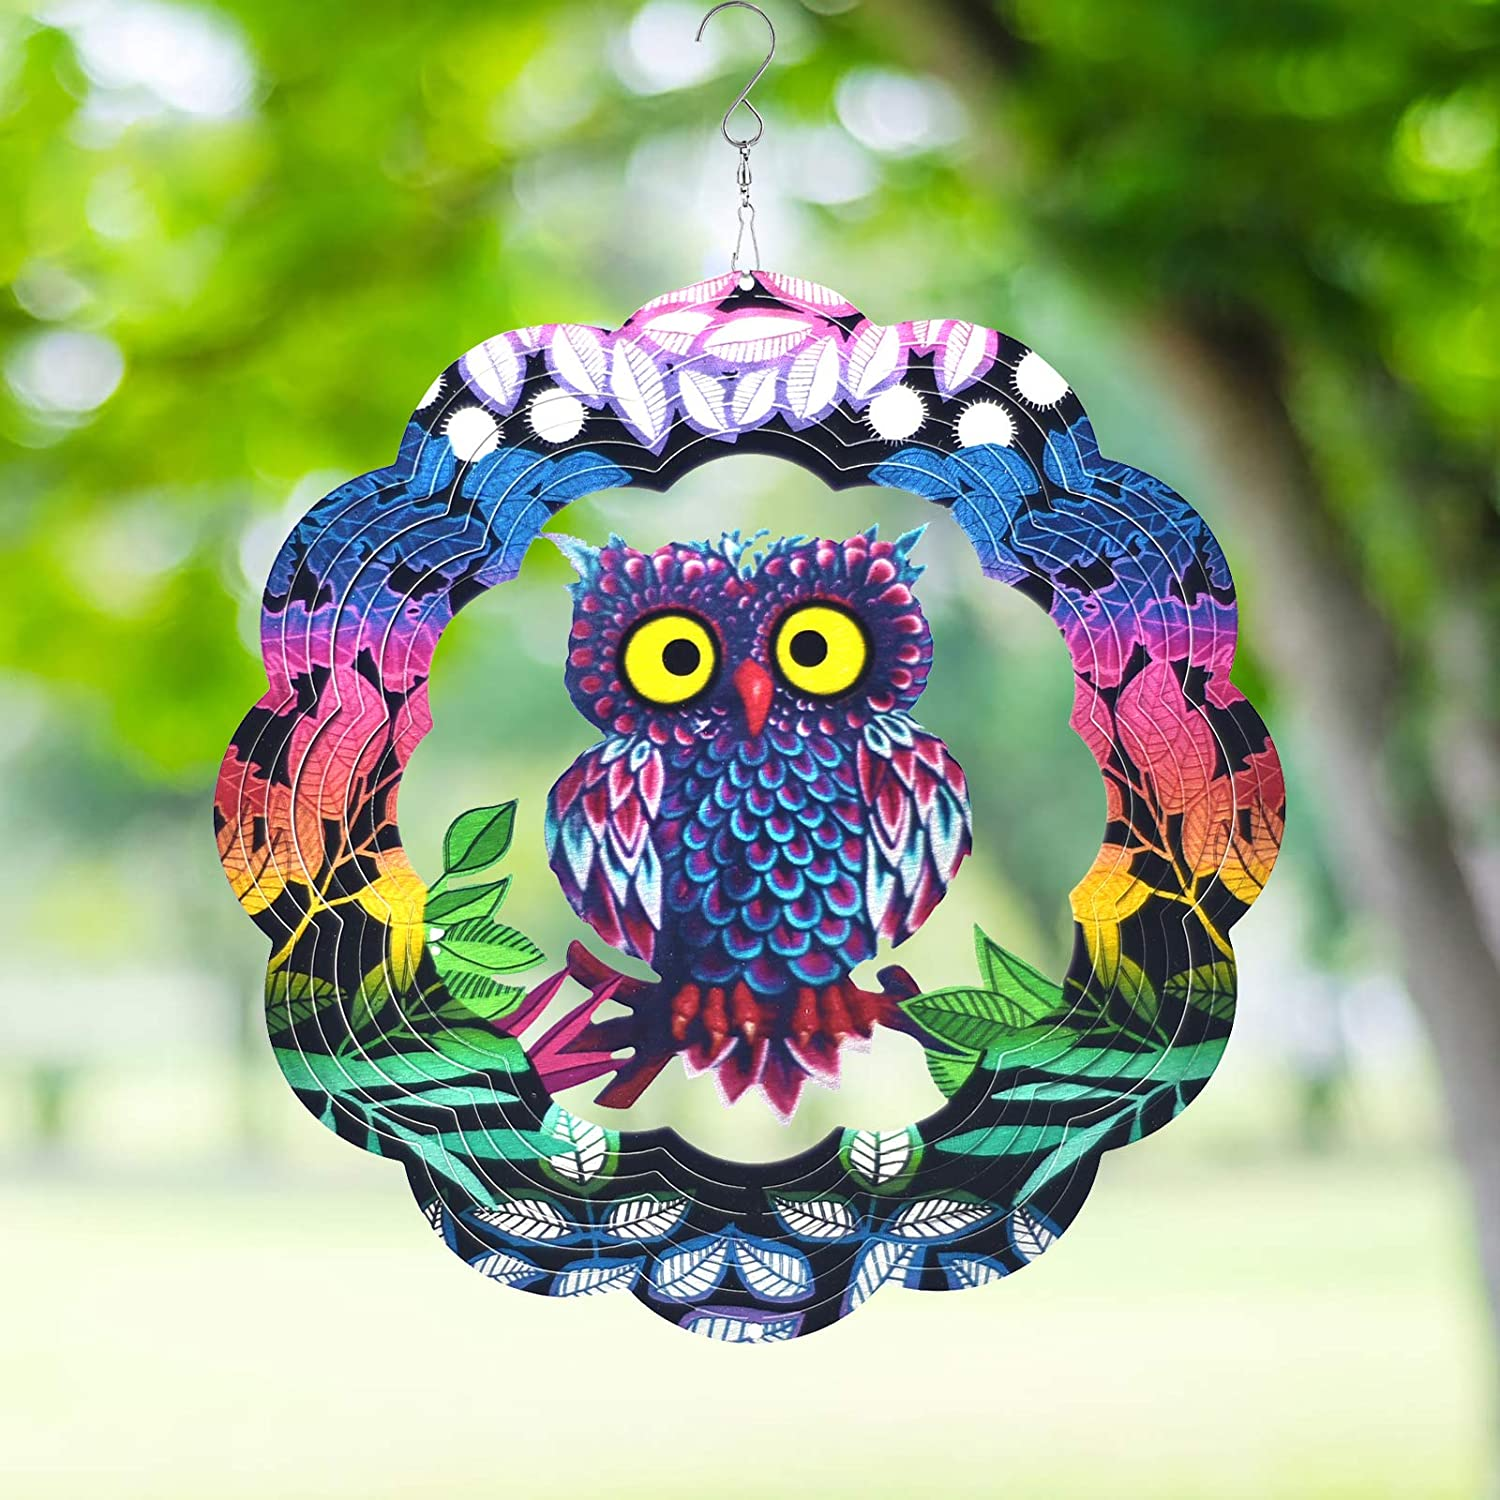 Wind Spinner Yard Art Garden Decor 3D Stainless Steel Metal Sculptures Owl Kinetic Hanging Whirligig Decorations Backyard Outside Indoor Outdoor Patio and Lawn Ornaments Clearance Sun Catcher Windmill